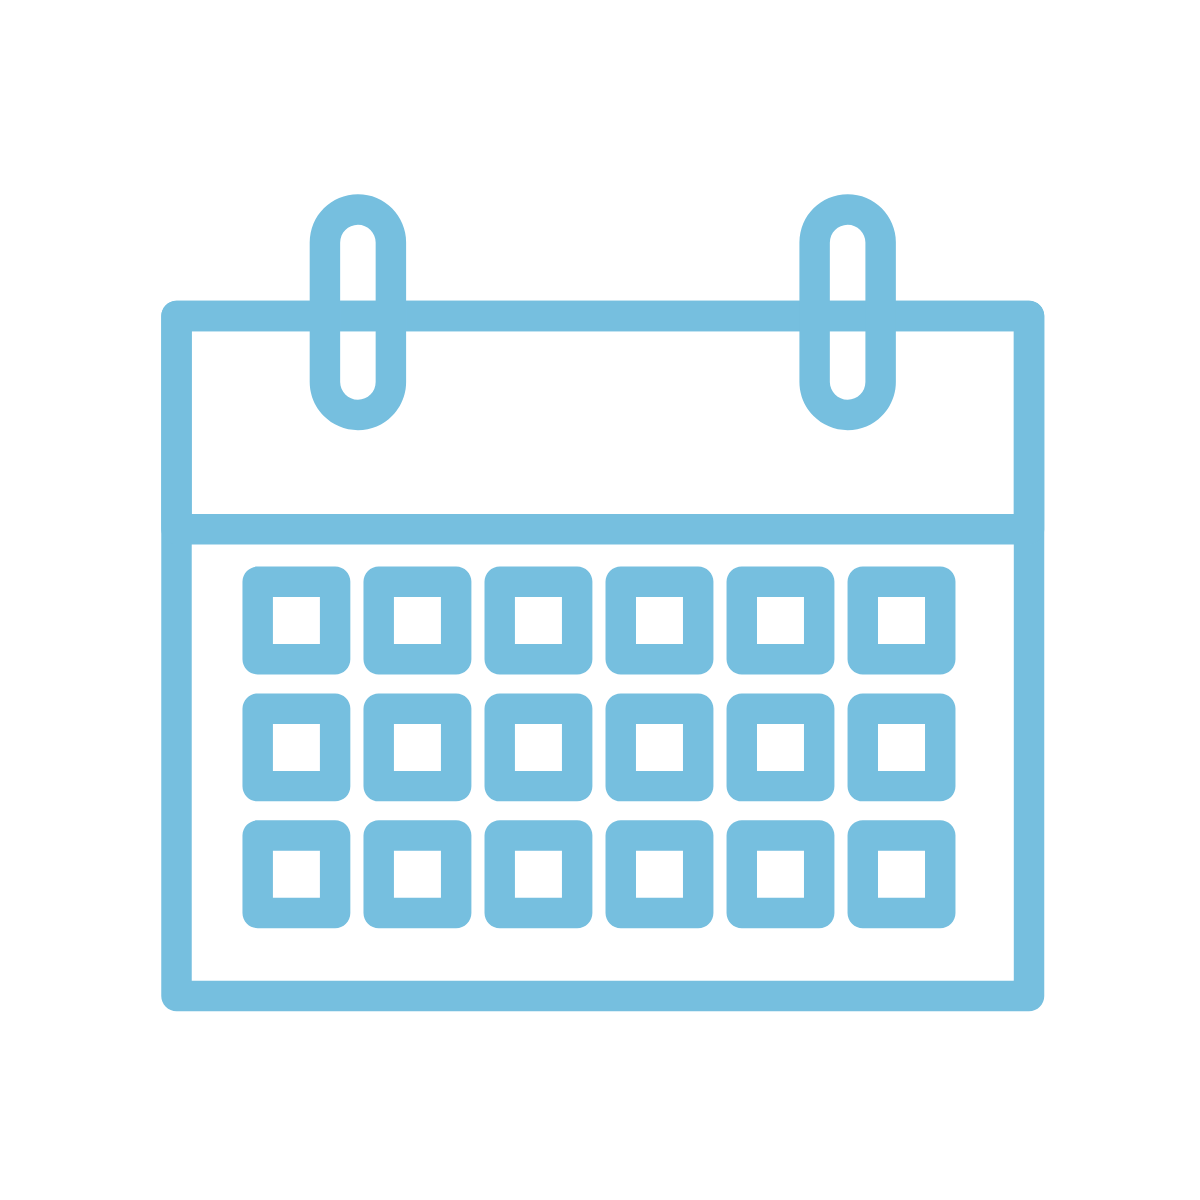 Project Schedule - Review the project's major milestones and timeline.